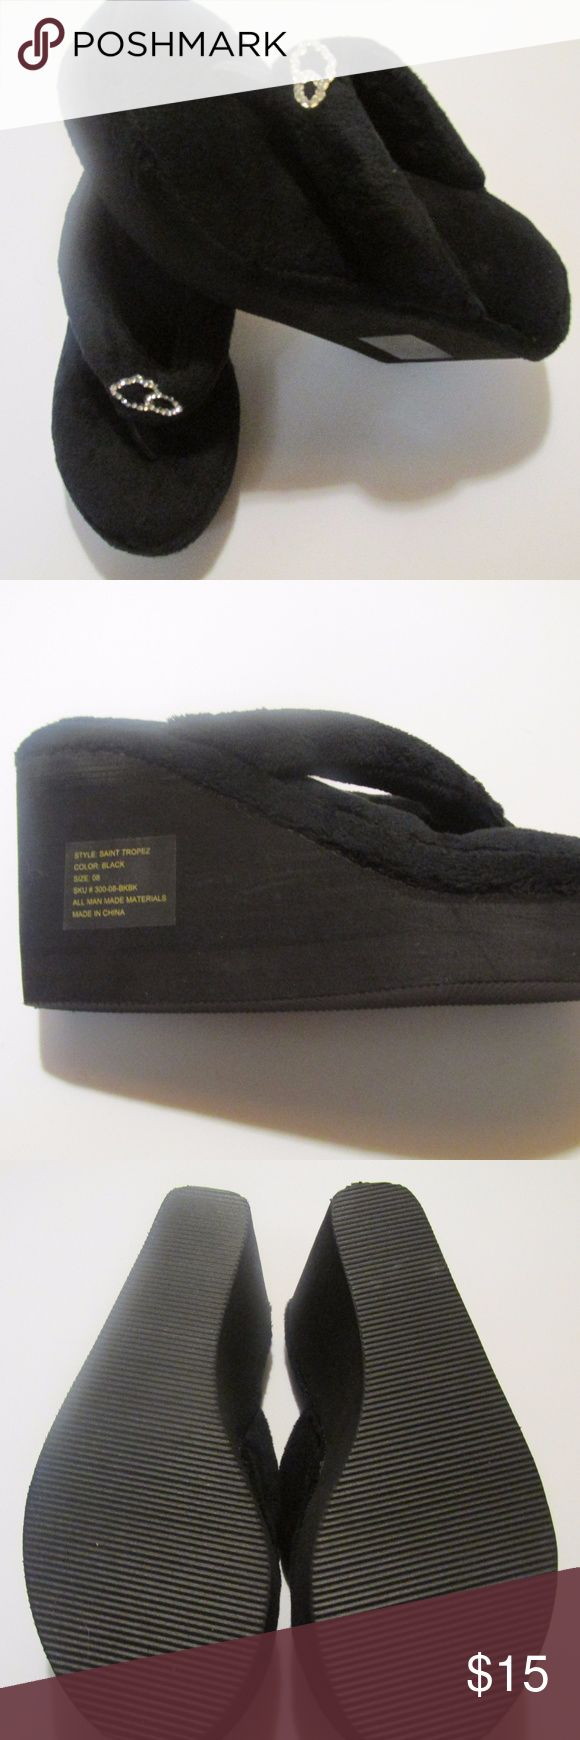 New Clouds Black Flip Flop Slippers Stacked Heel 8 New with original sticker Clouds flip flop style black slippers in a size 8.  Measuring the sole, from the heel to the toe, item measures 9 inches.  Heel height is 3 1/4 inches. Clouds Shoes Slippers